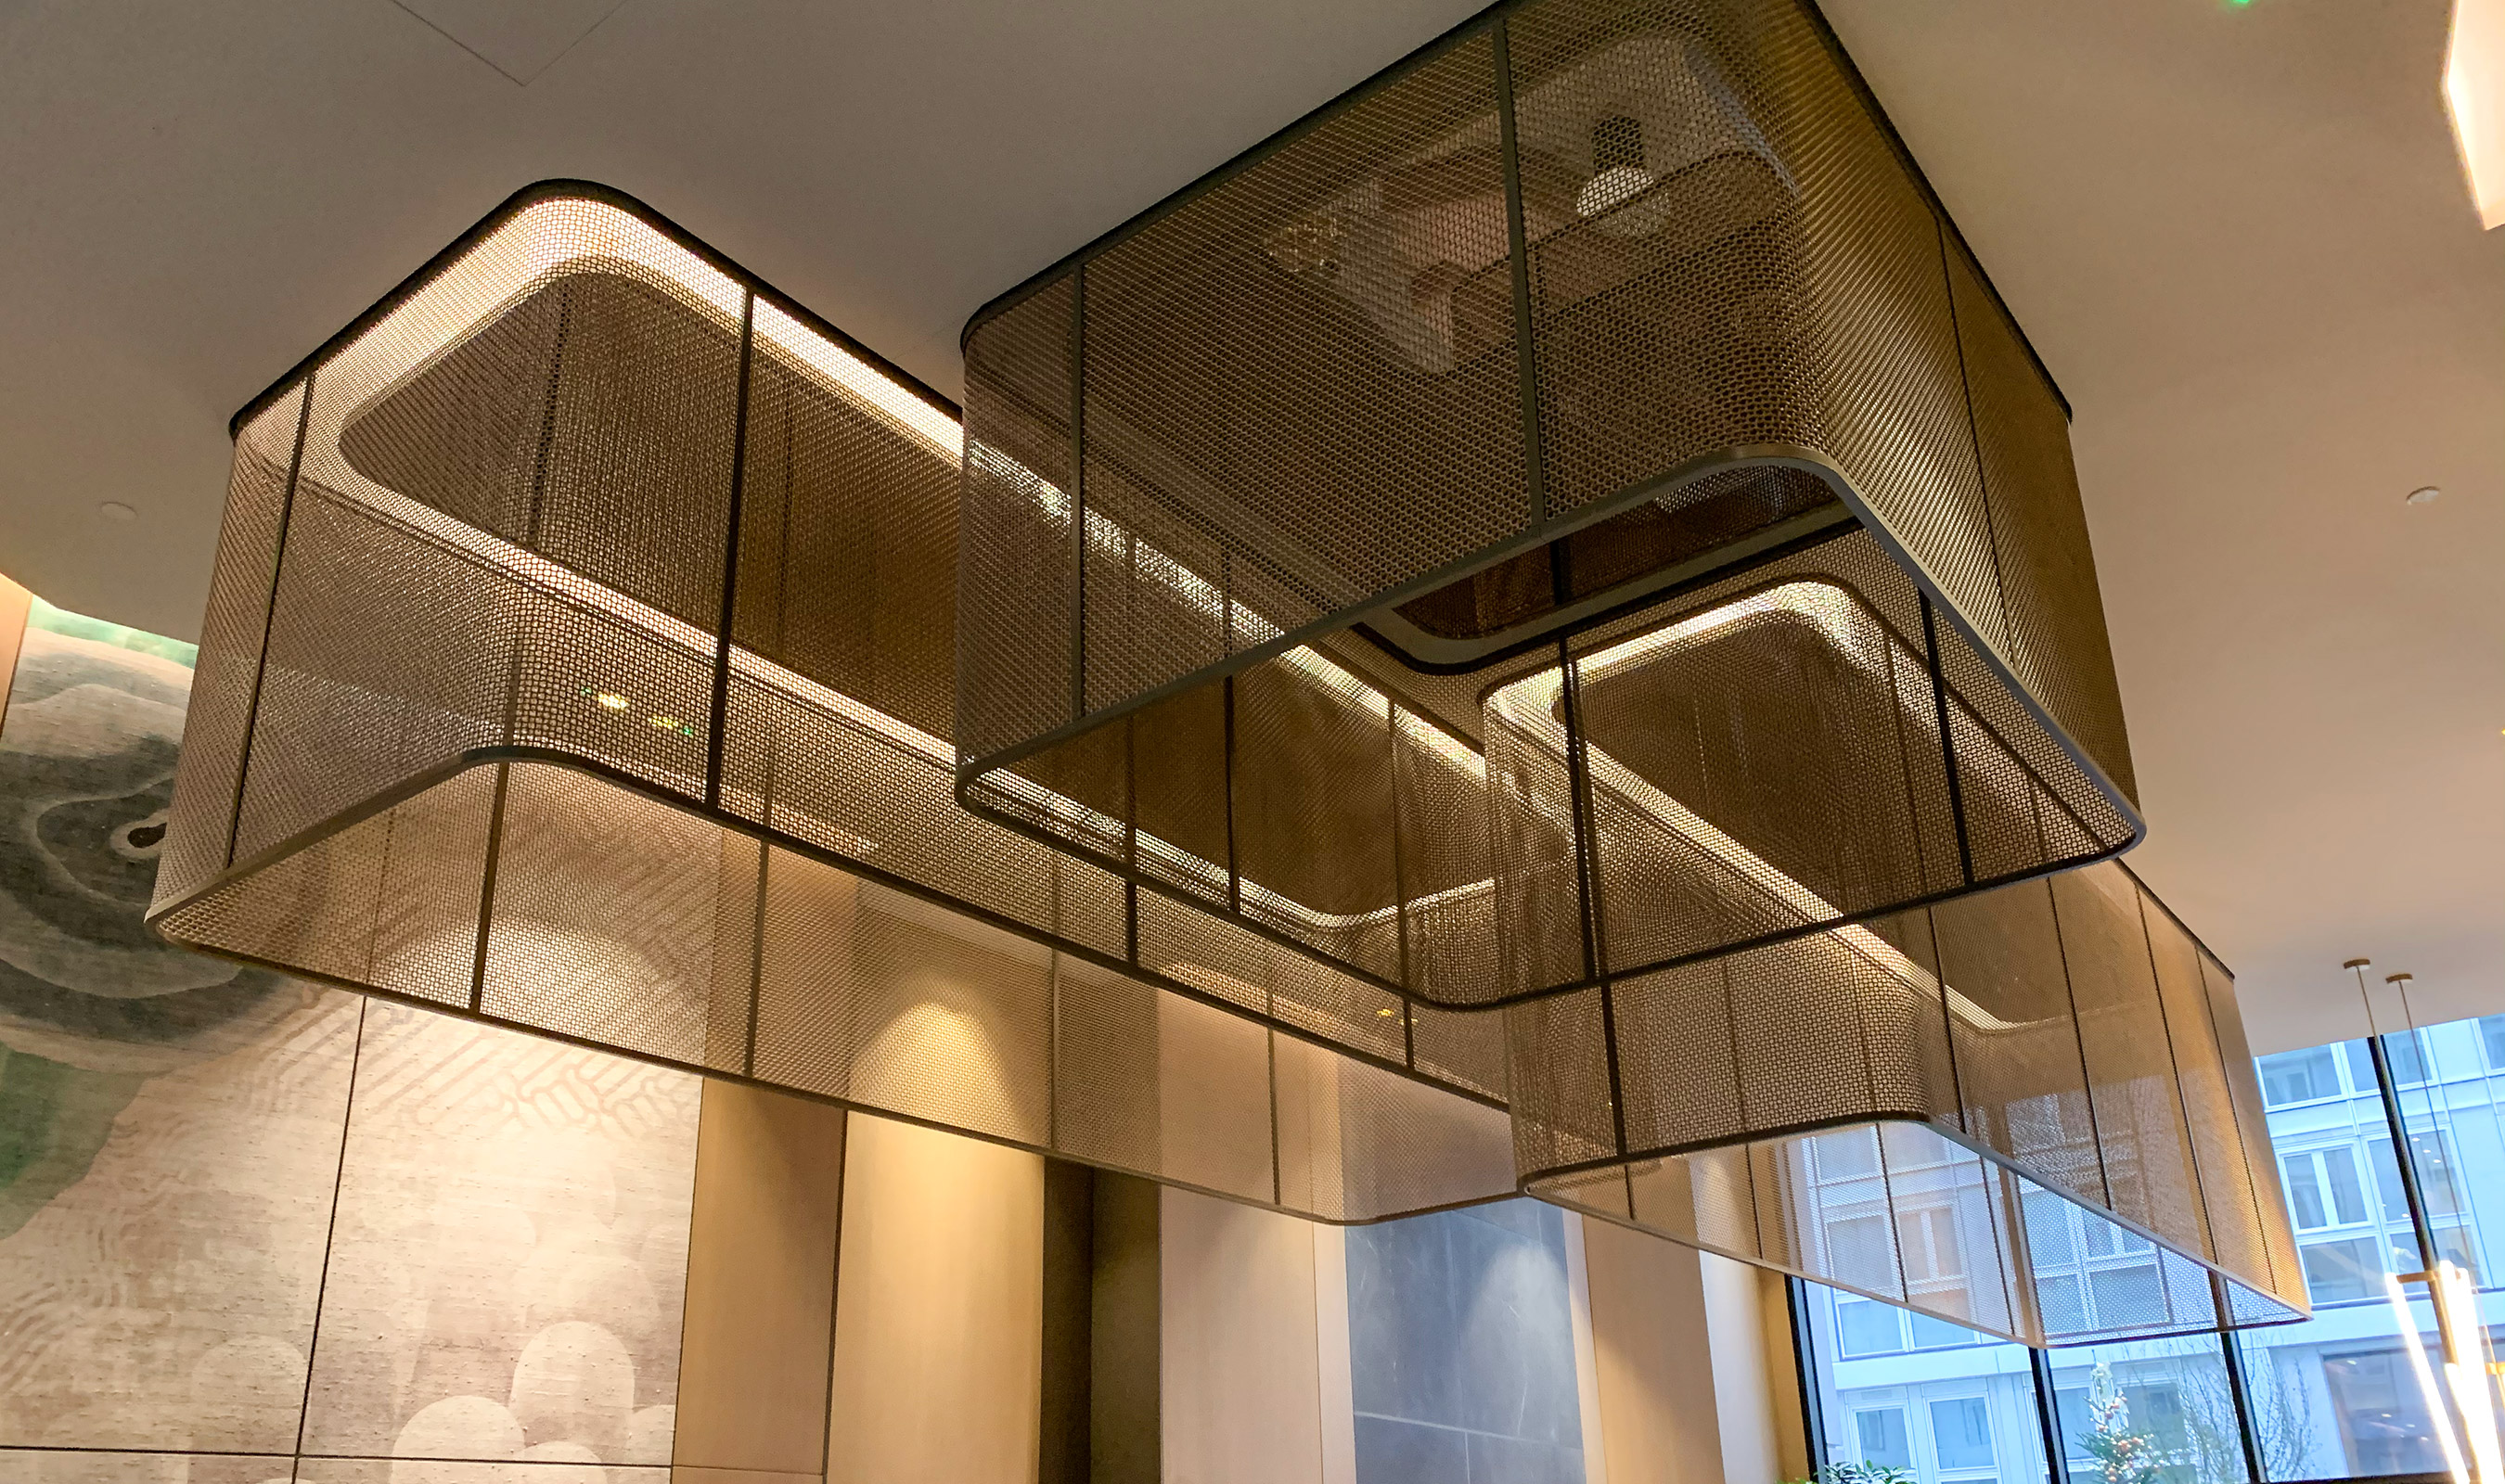 Banker Wire's M22-83 in mixed Stainless Steel and Bronze is used as chandeliers in the lobby of Lincoln Square.